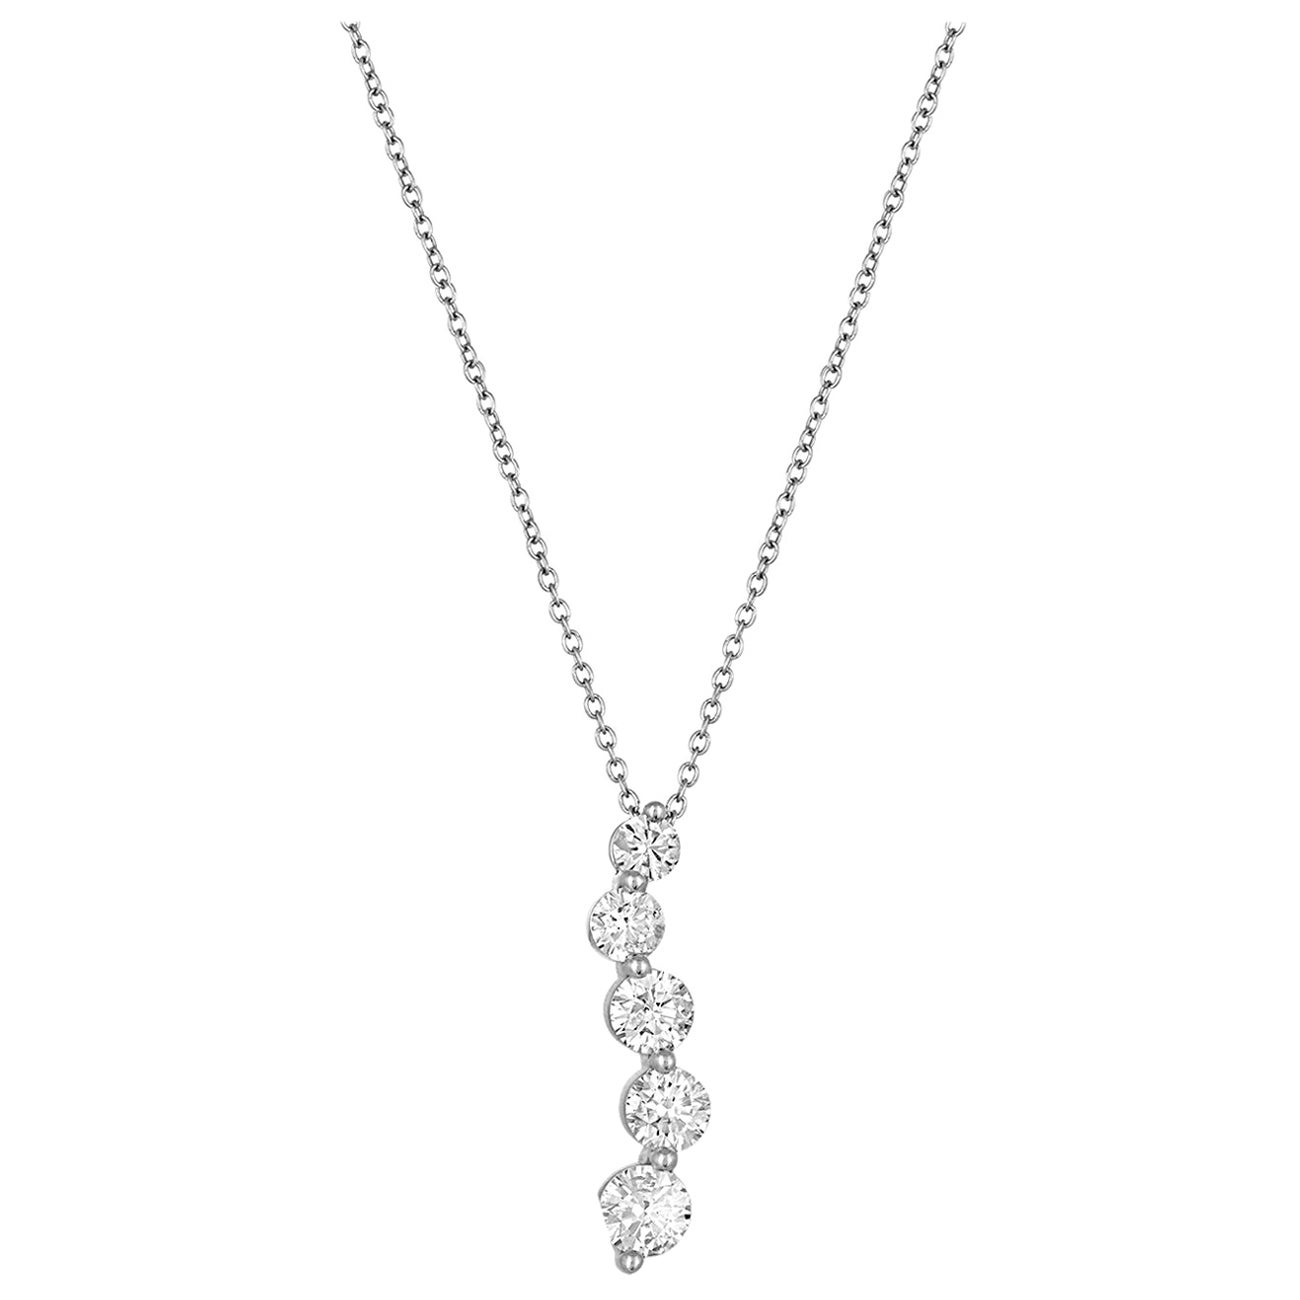 1.40 Carat Diamond Five-Stone Journey Gold Pendant Necklace